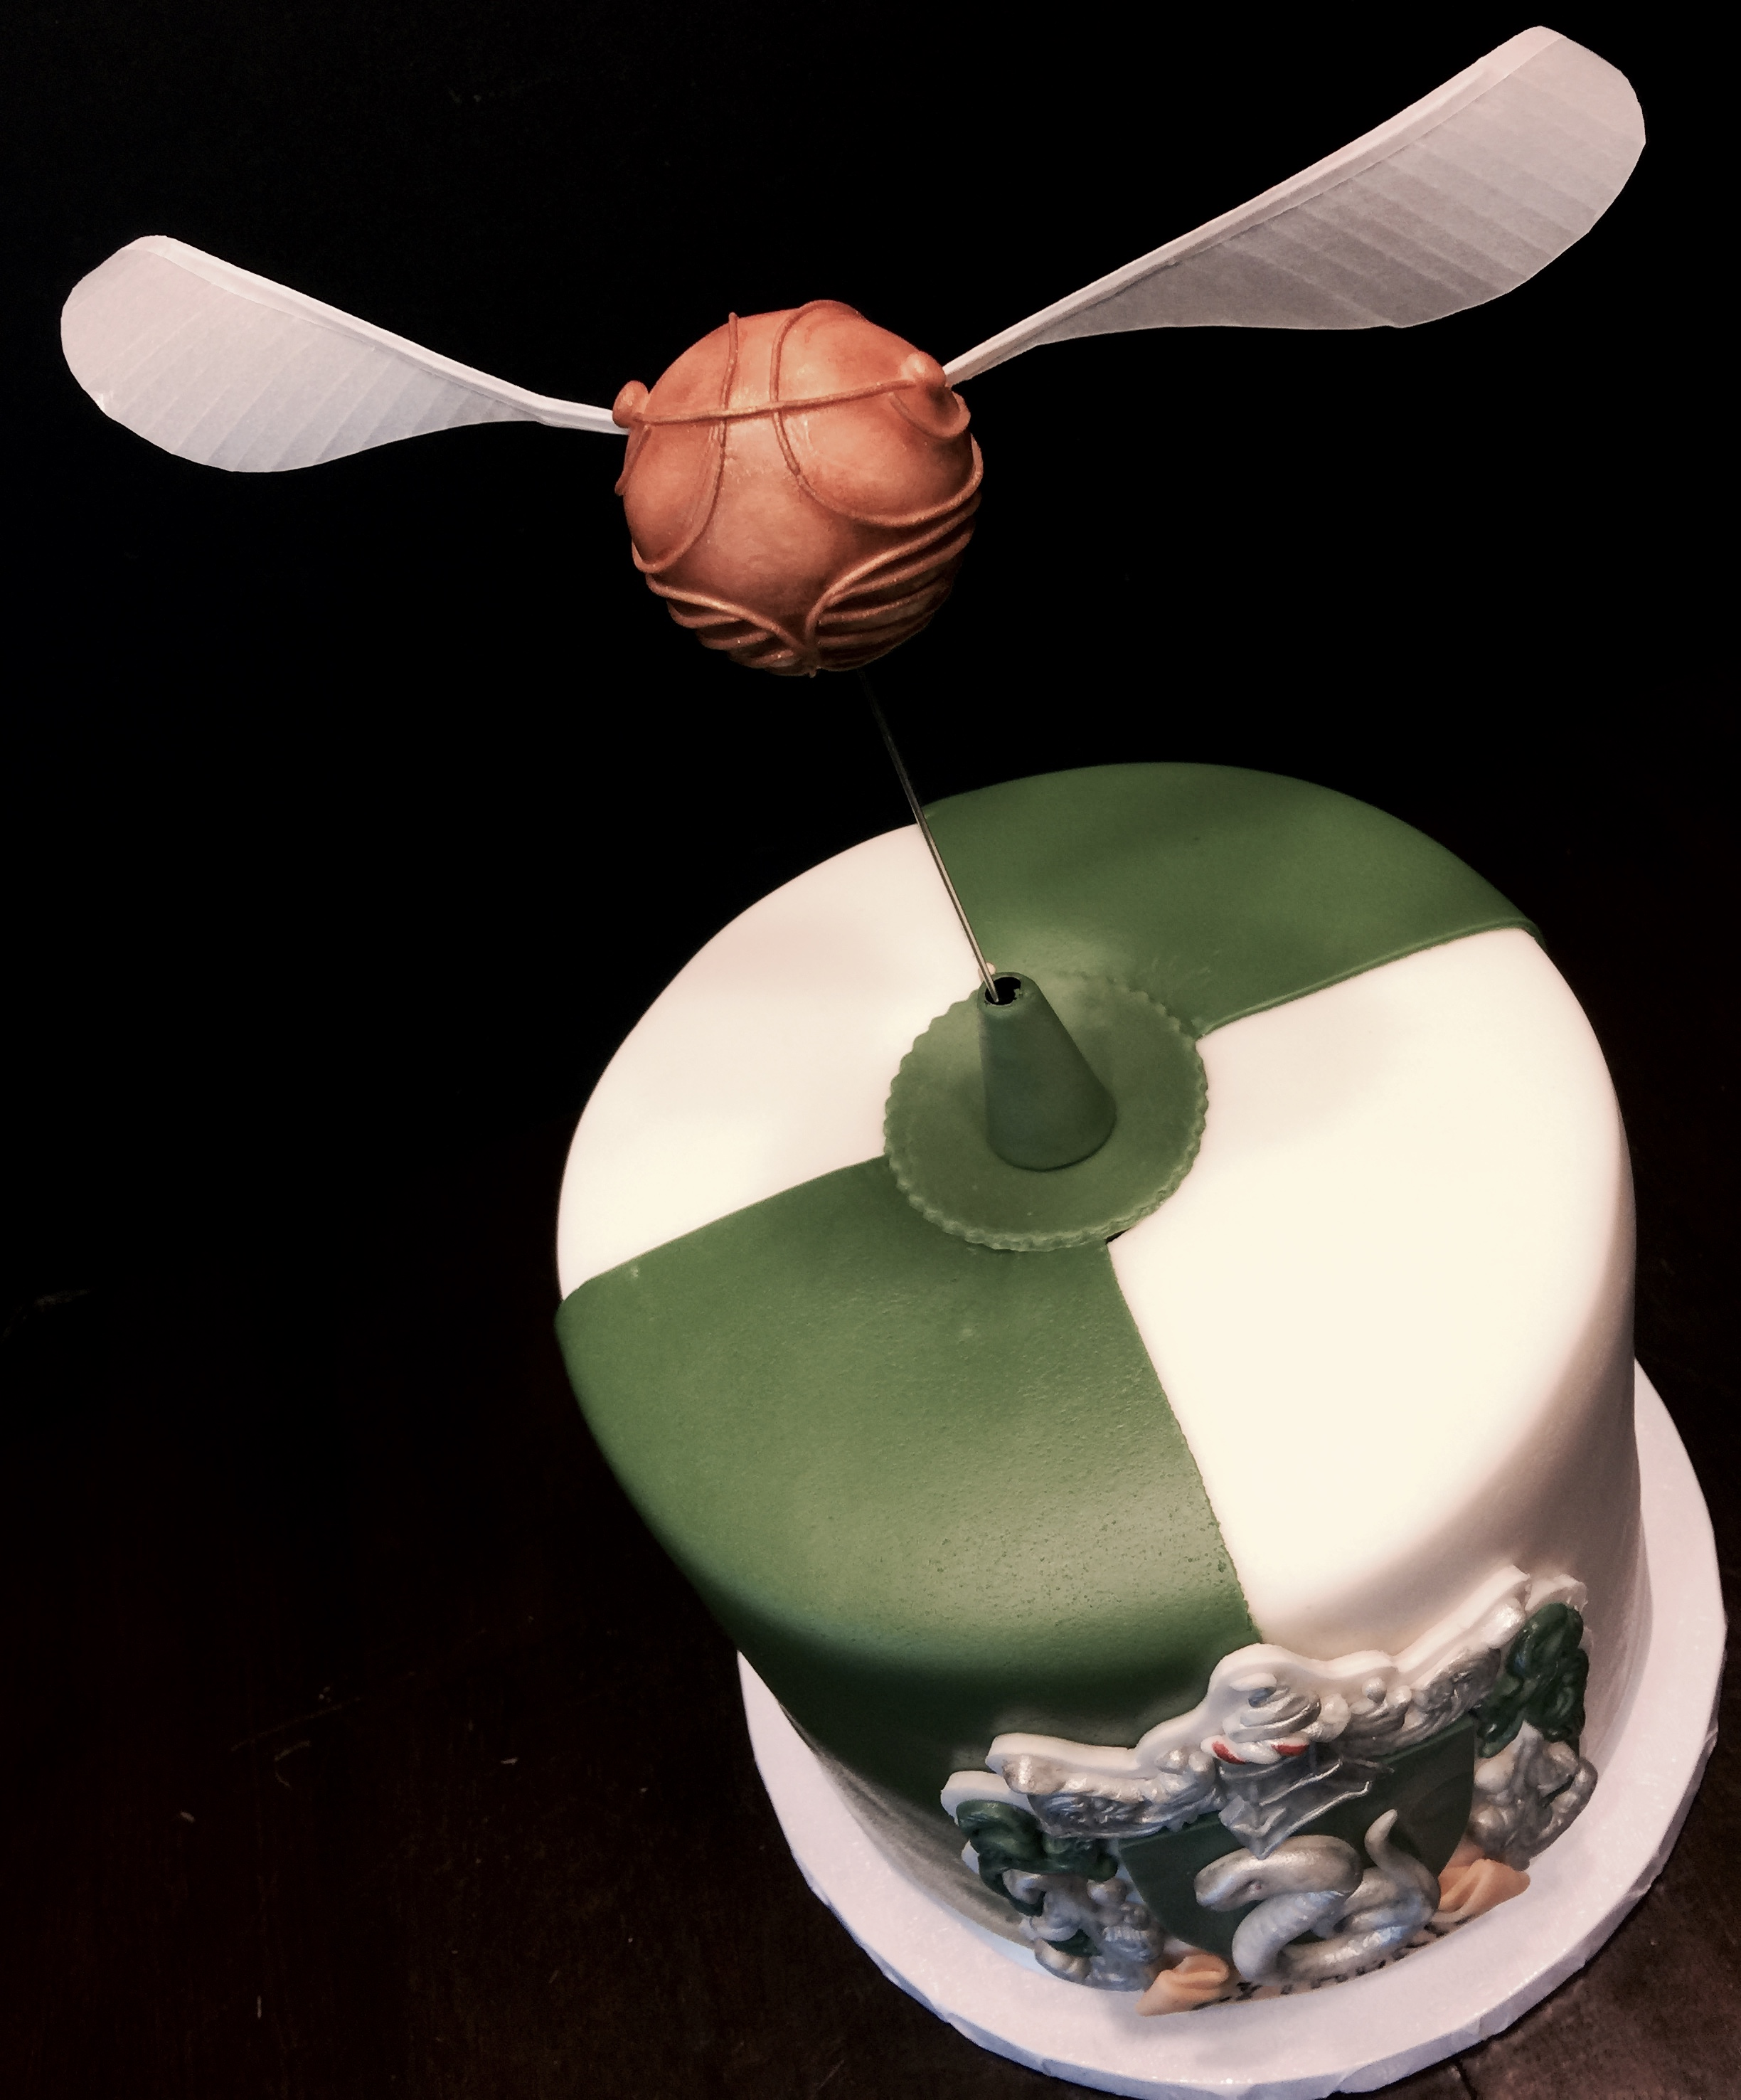 Rotating Snitch Cake